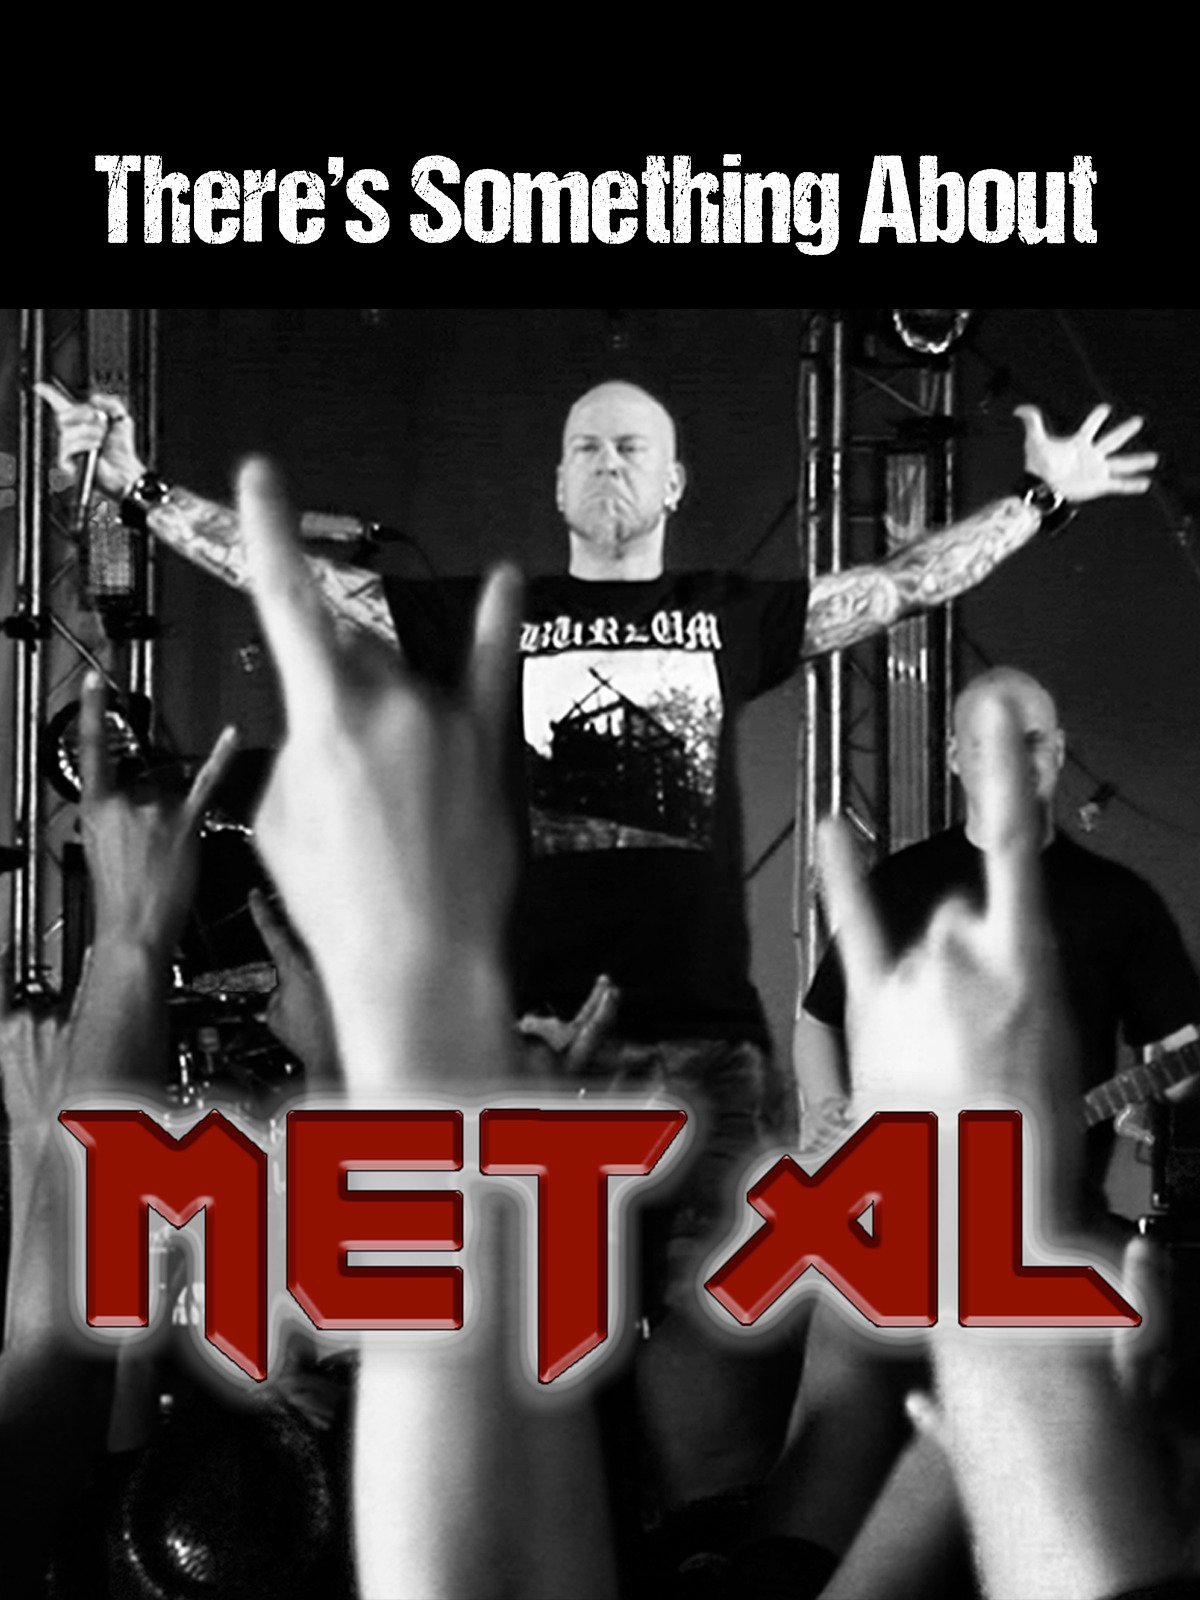 There's Something About Metal